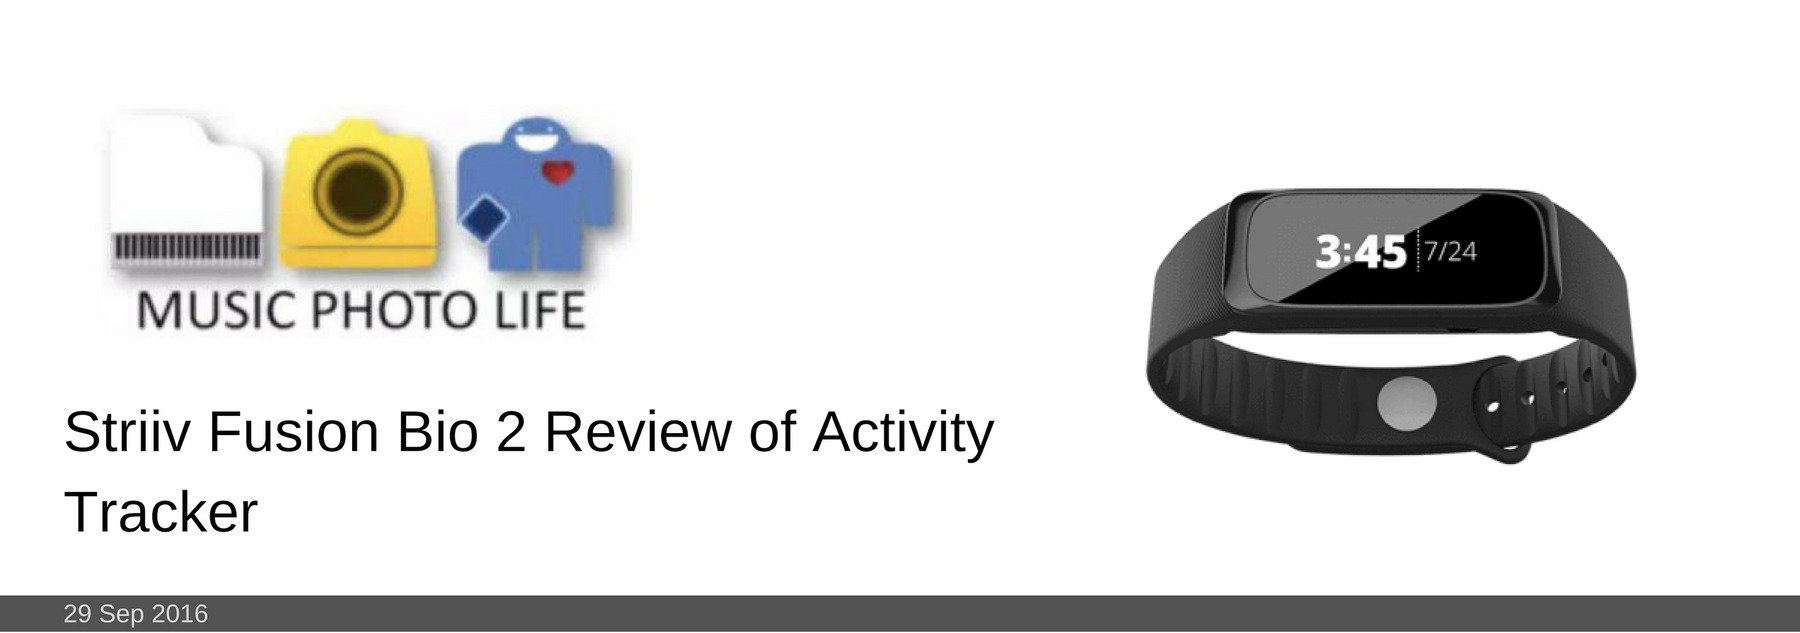 29 SEP 2016: Striiv Fusion Bio 2 Review of Activity Tracker